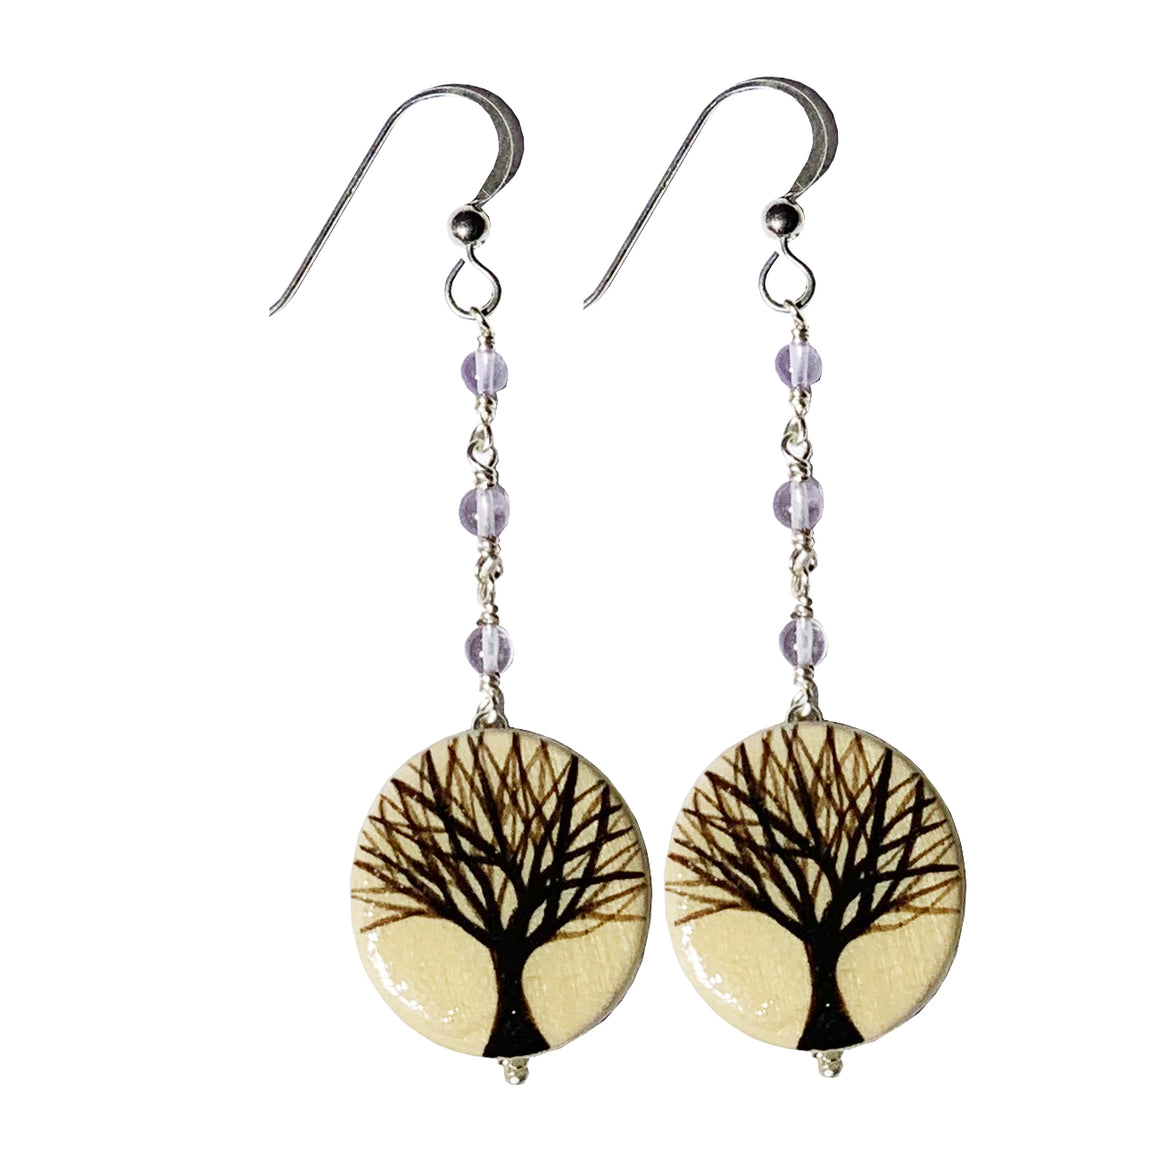 Hand Painted Trees Earrings